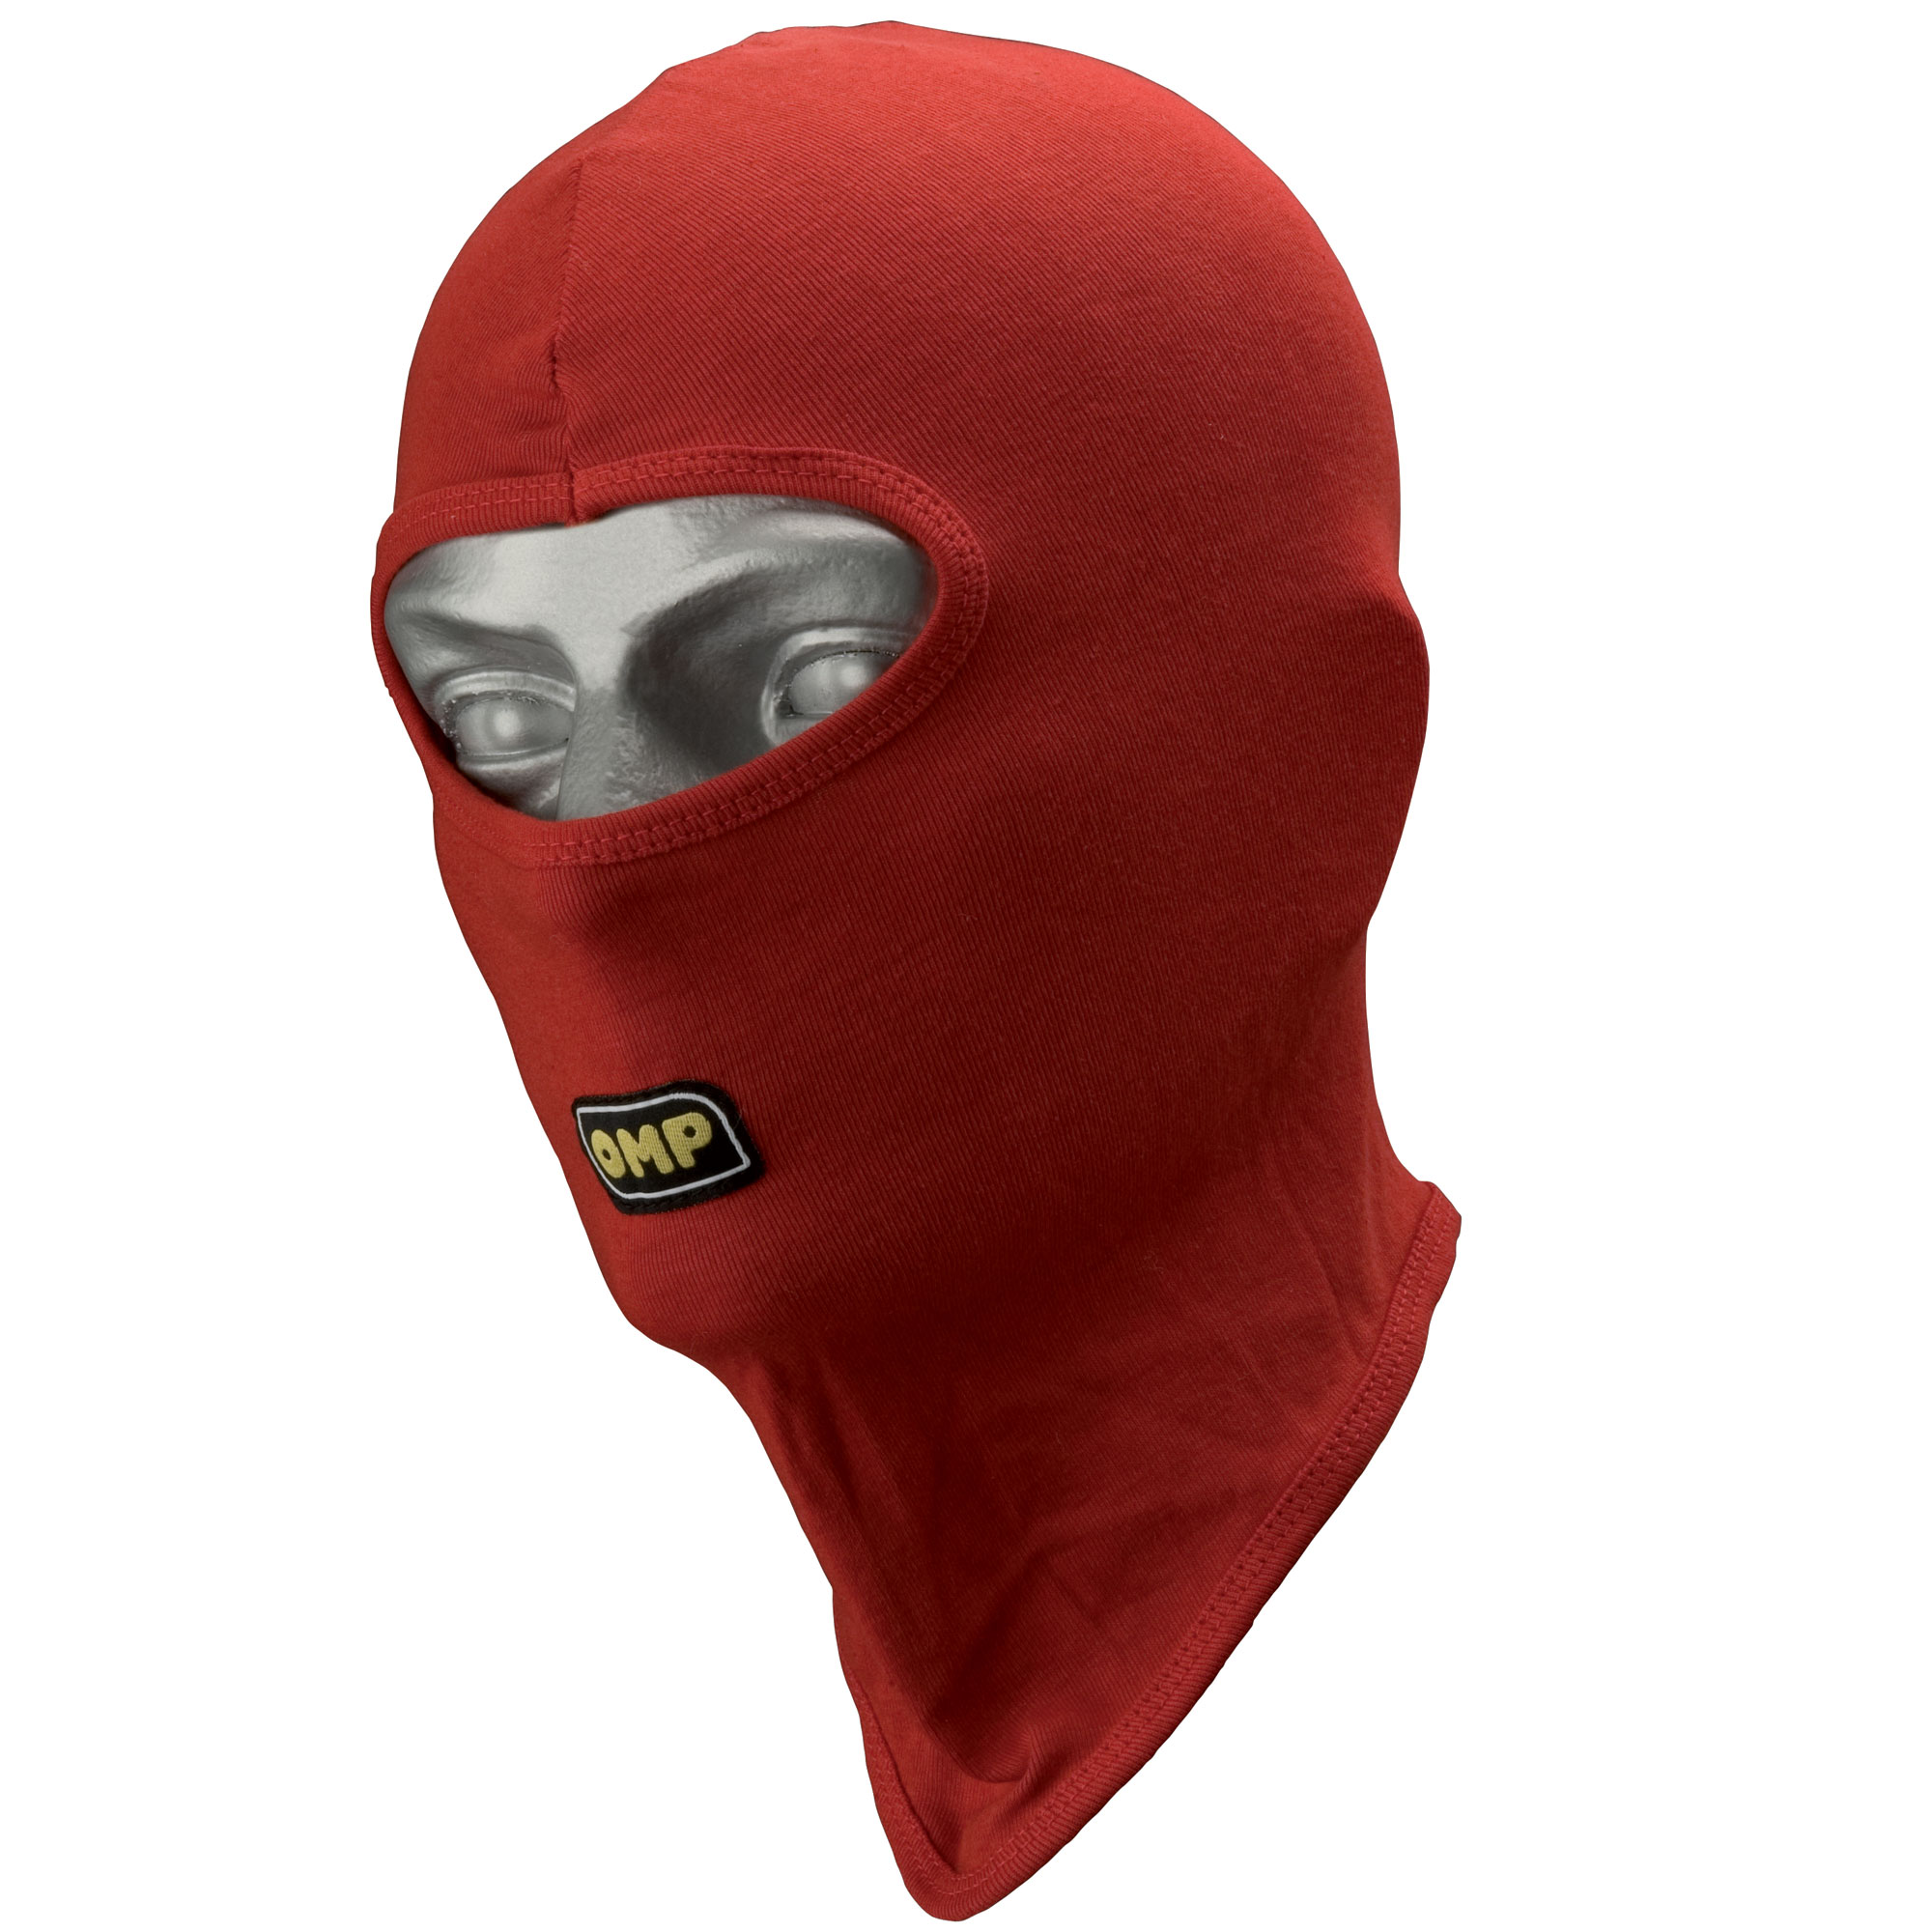 One Size OMP Open Face Kart Racing//Go Karting Balaclava In Blue